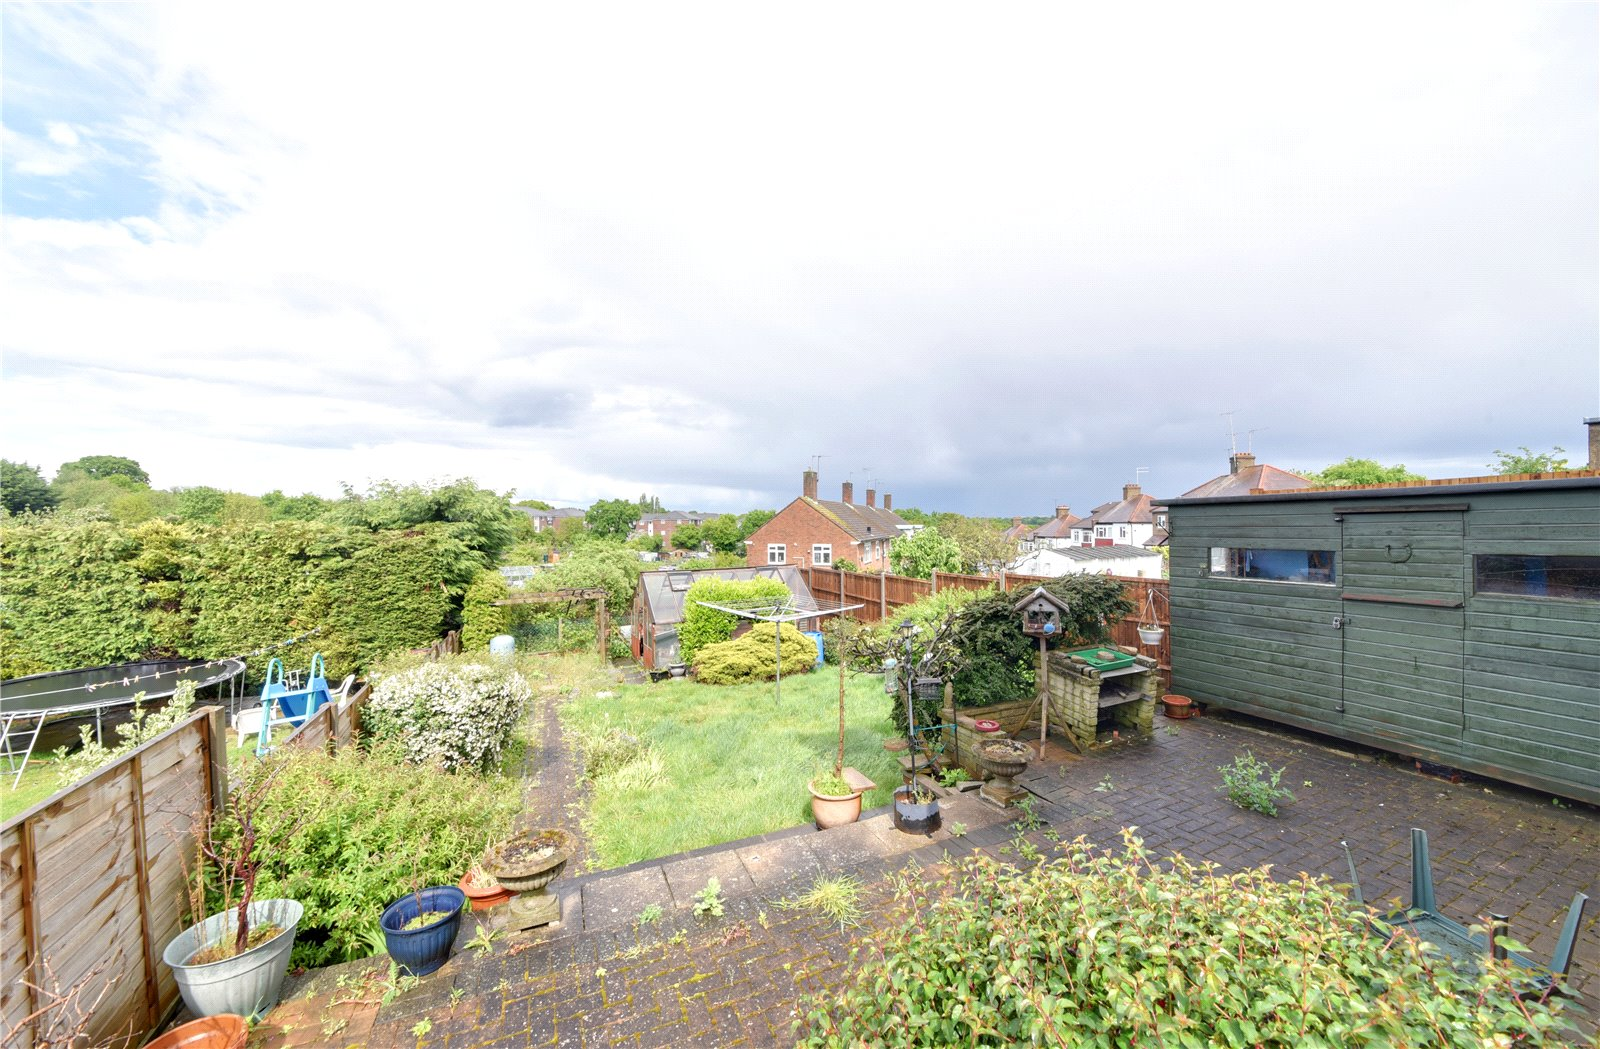 3 bed house for sale in Whetstone, N20 0DG  - Property Image 4